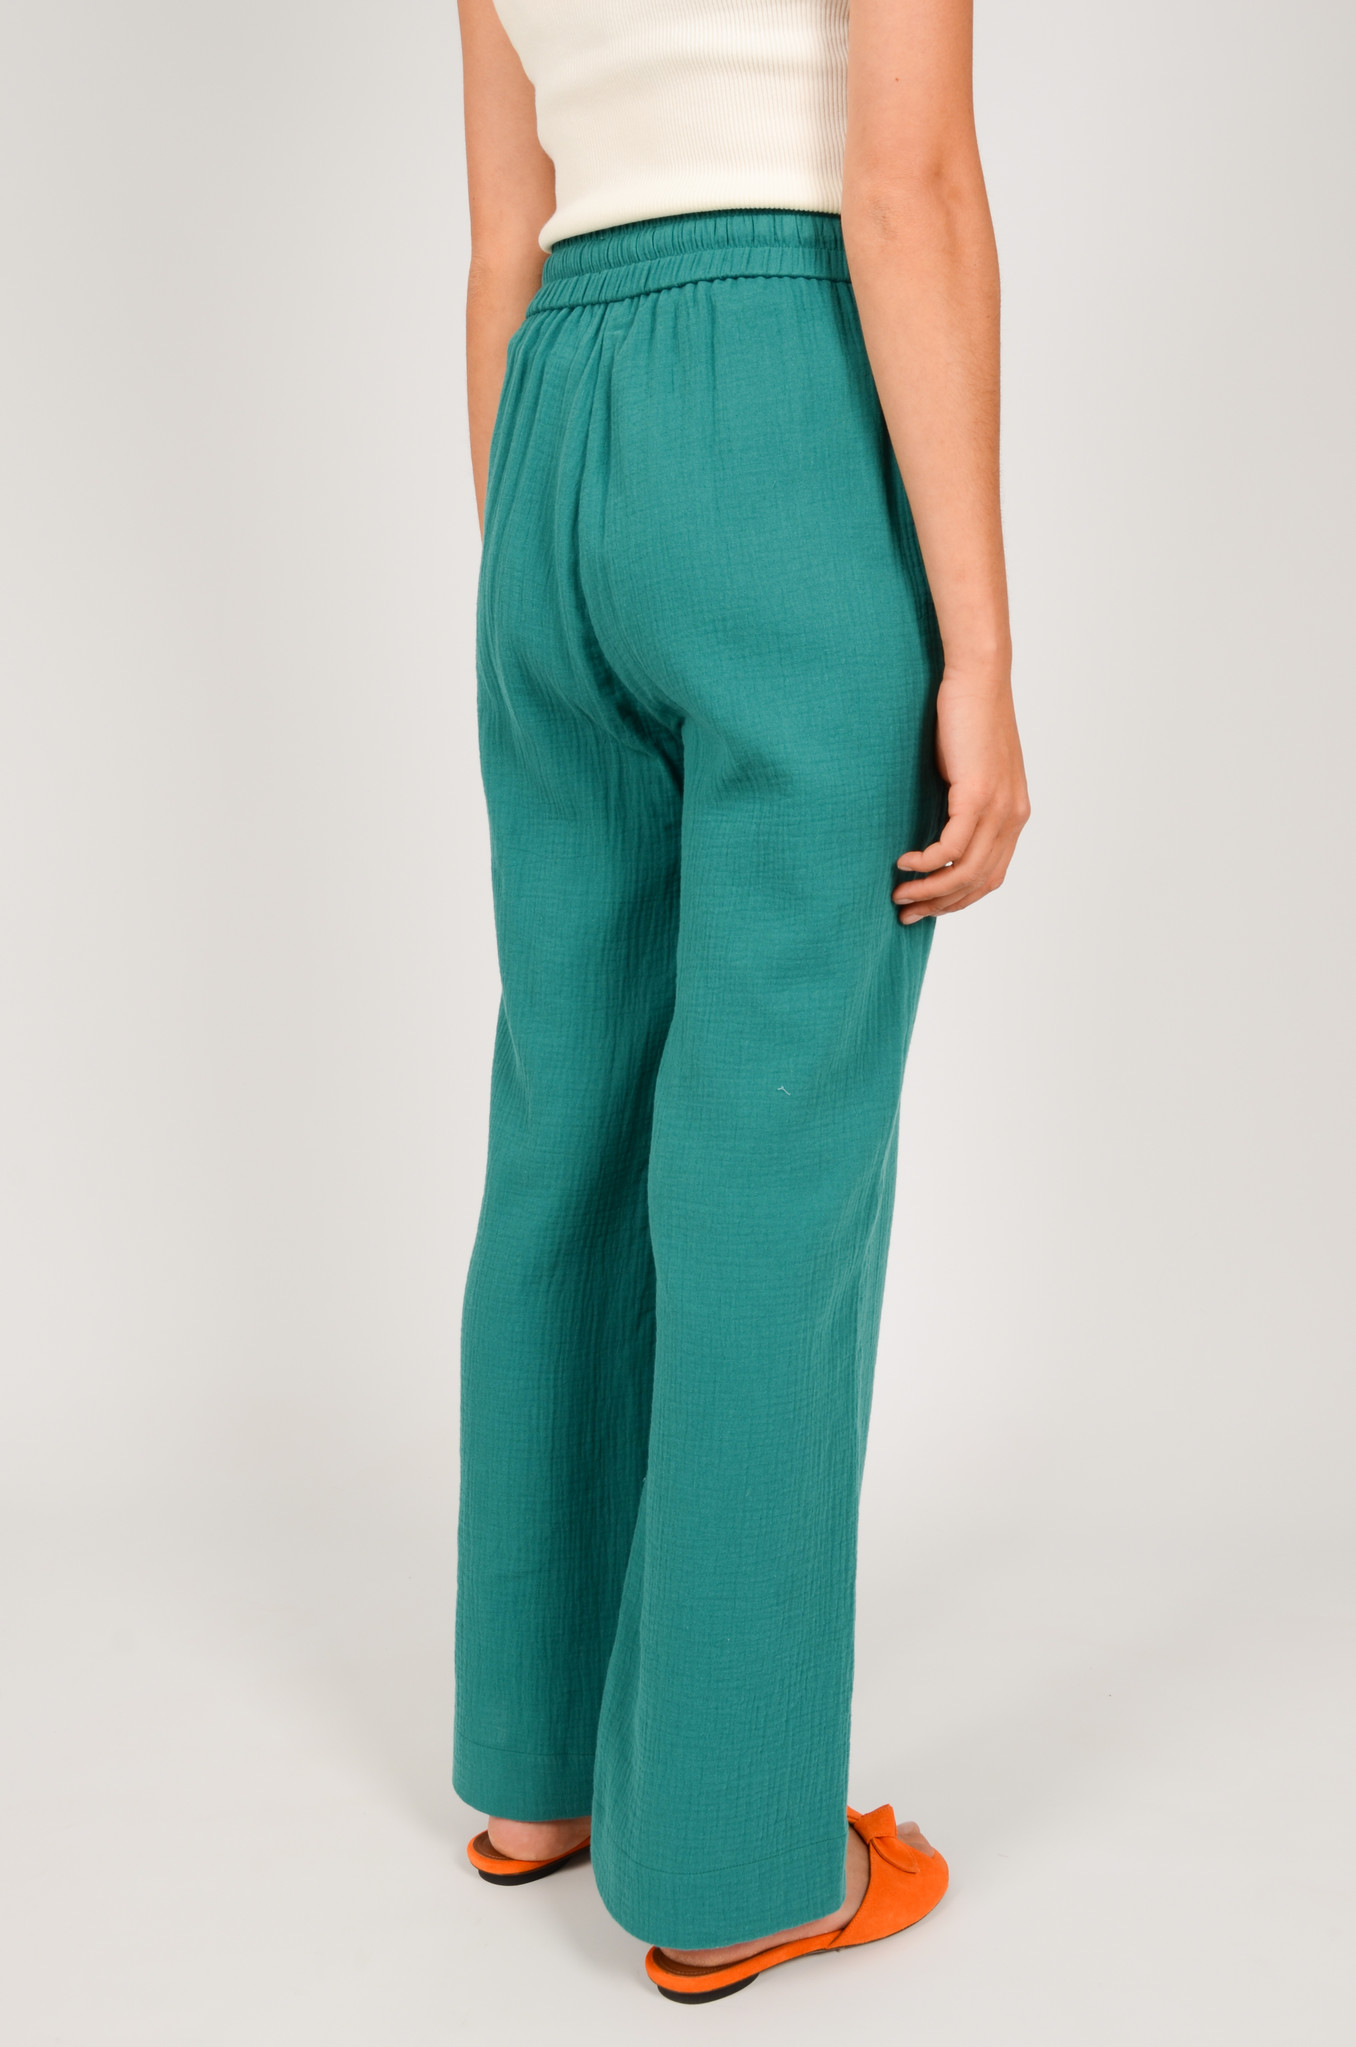 PATTY TROUSERS IN GREEN-4